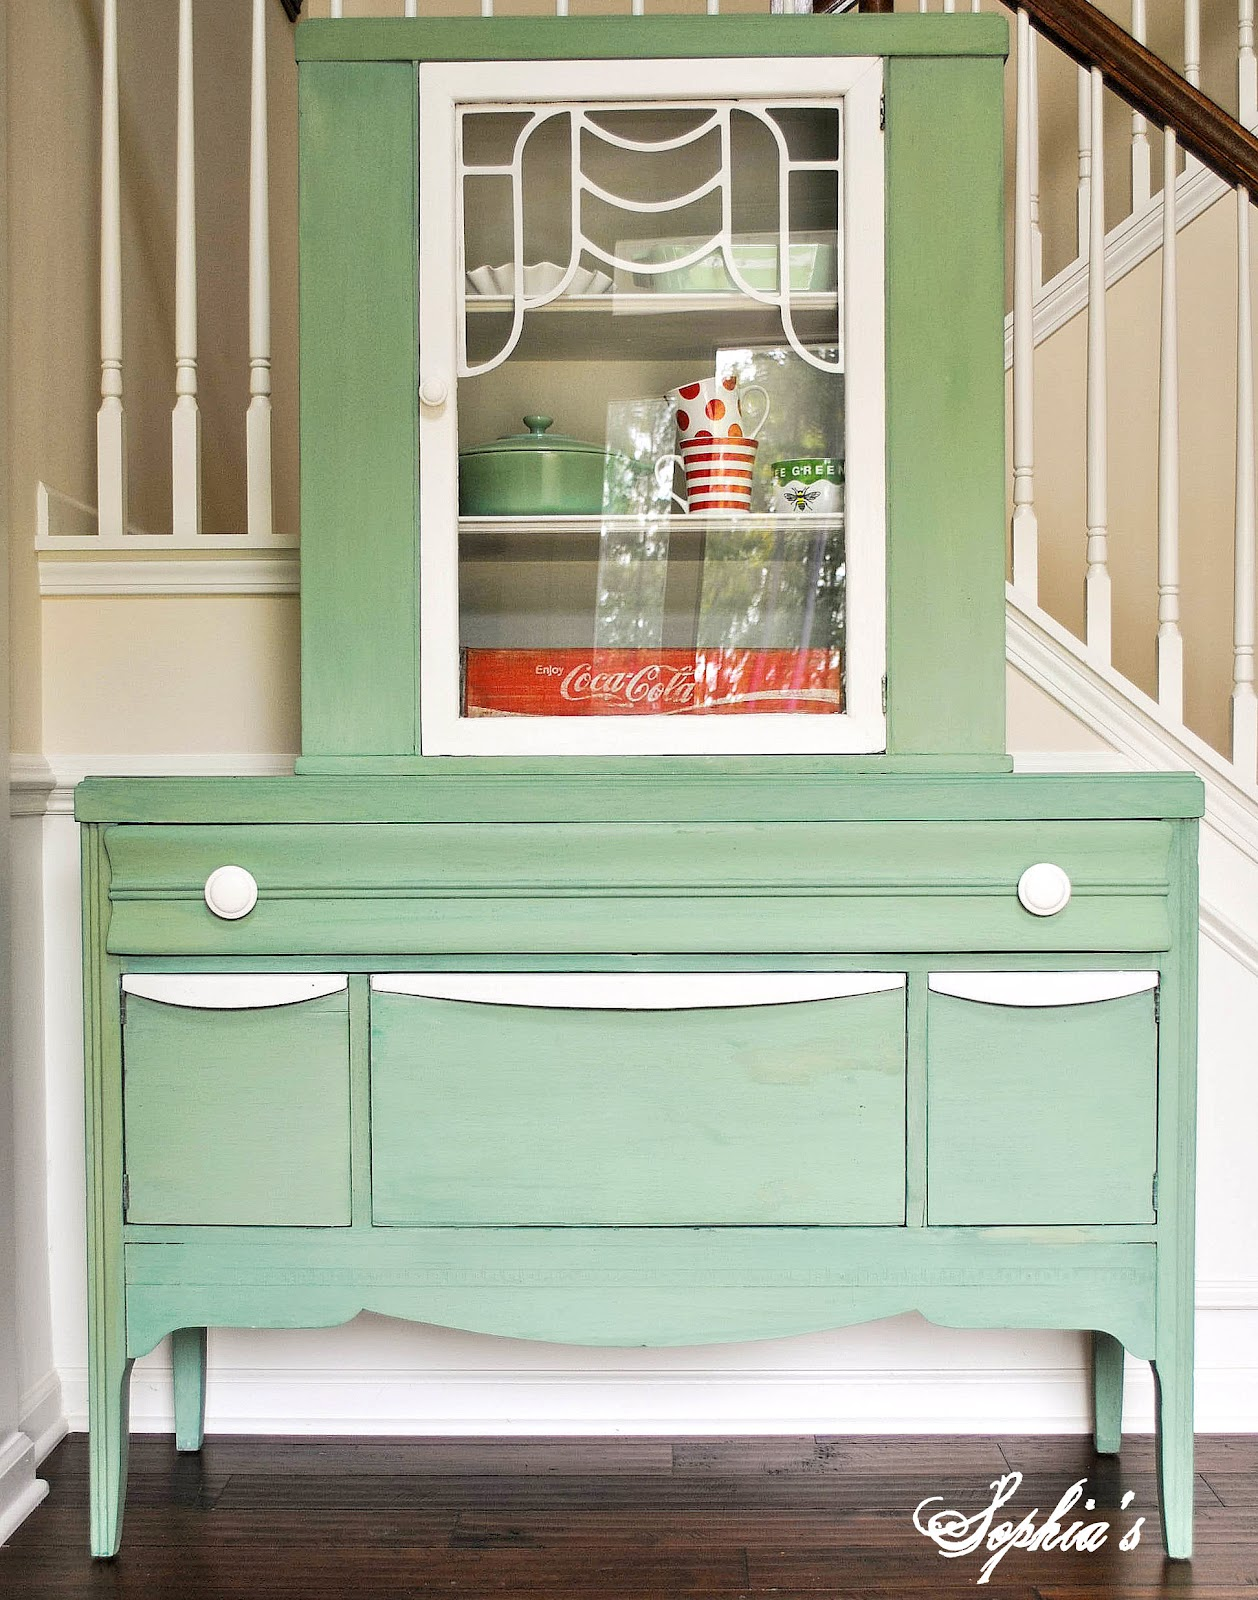 Sophia's: Luckett's Green Milk Paint Cabinet